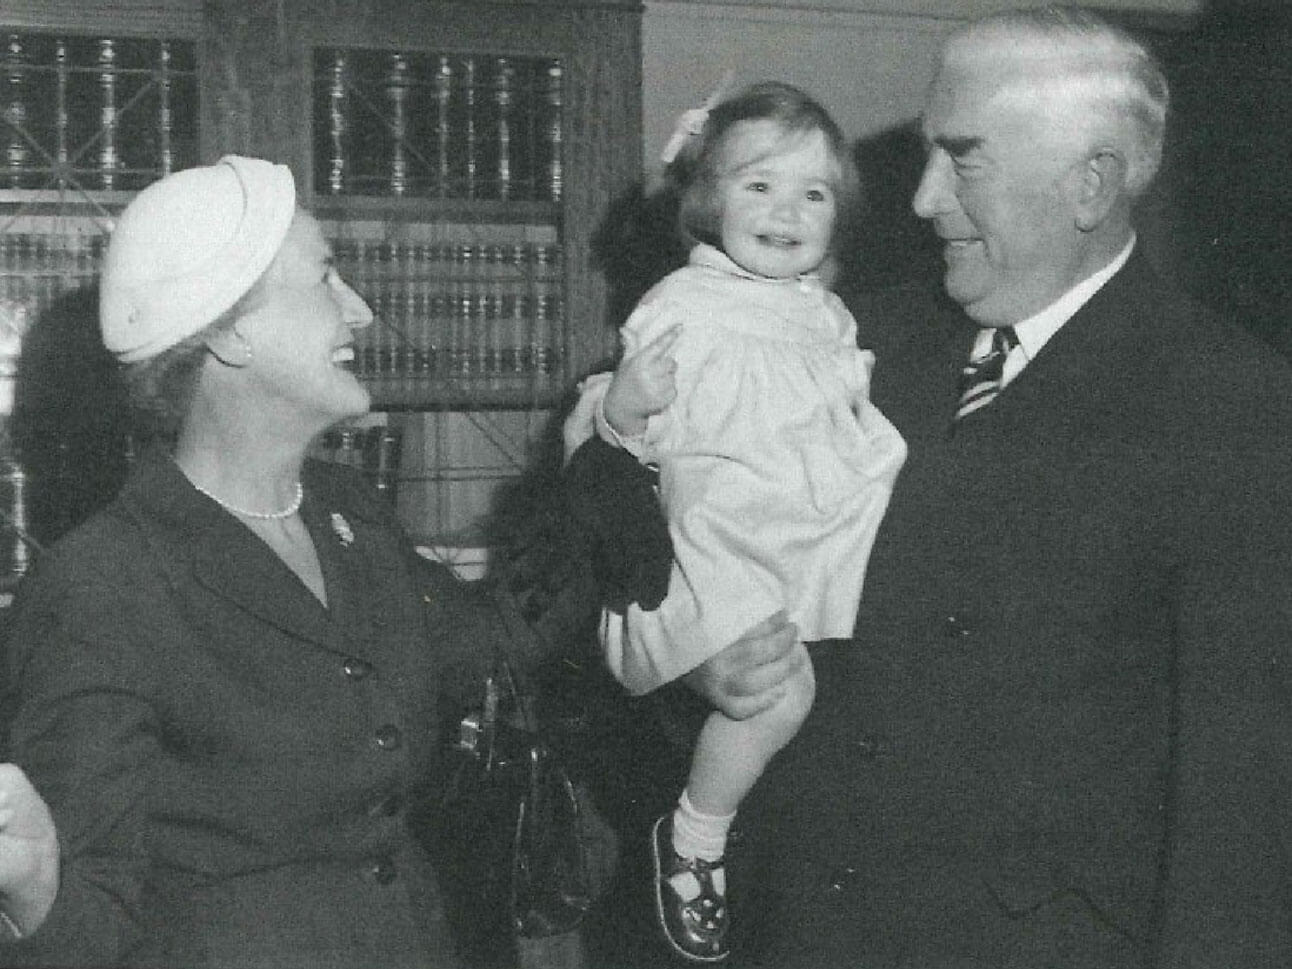 Dame Pattie and Sir Robert with their granddaughter Edwina who returned the scarf to Johnstons